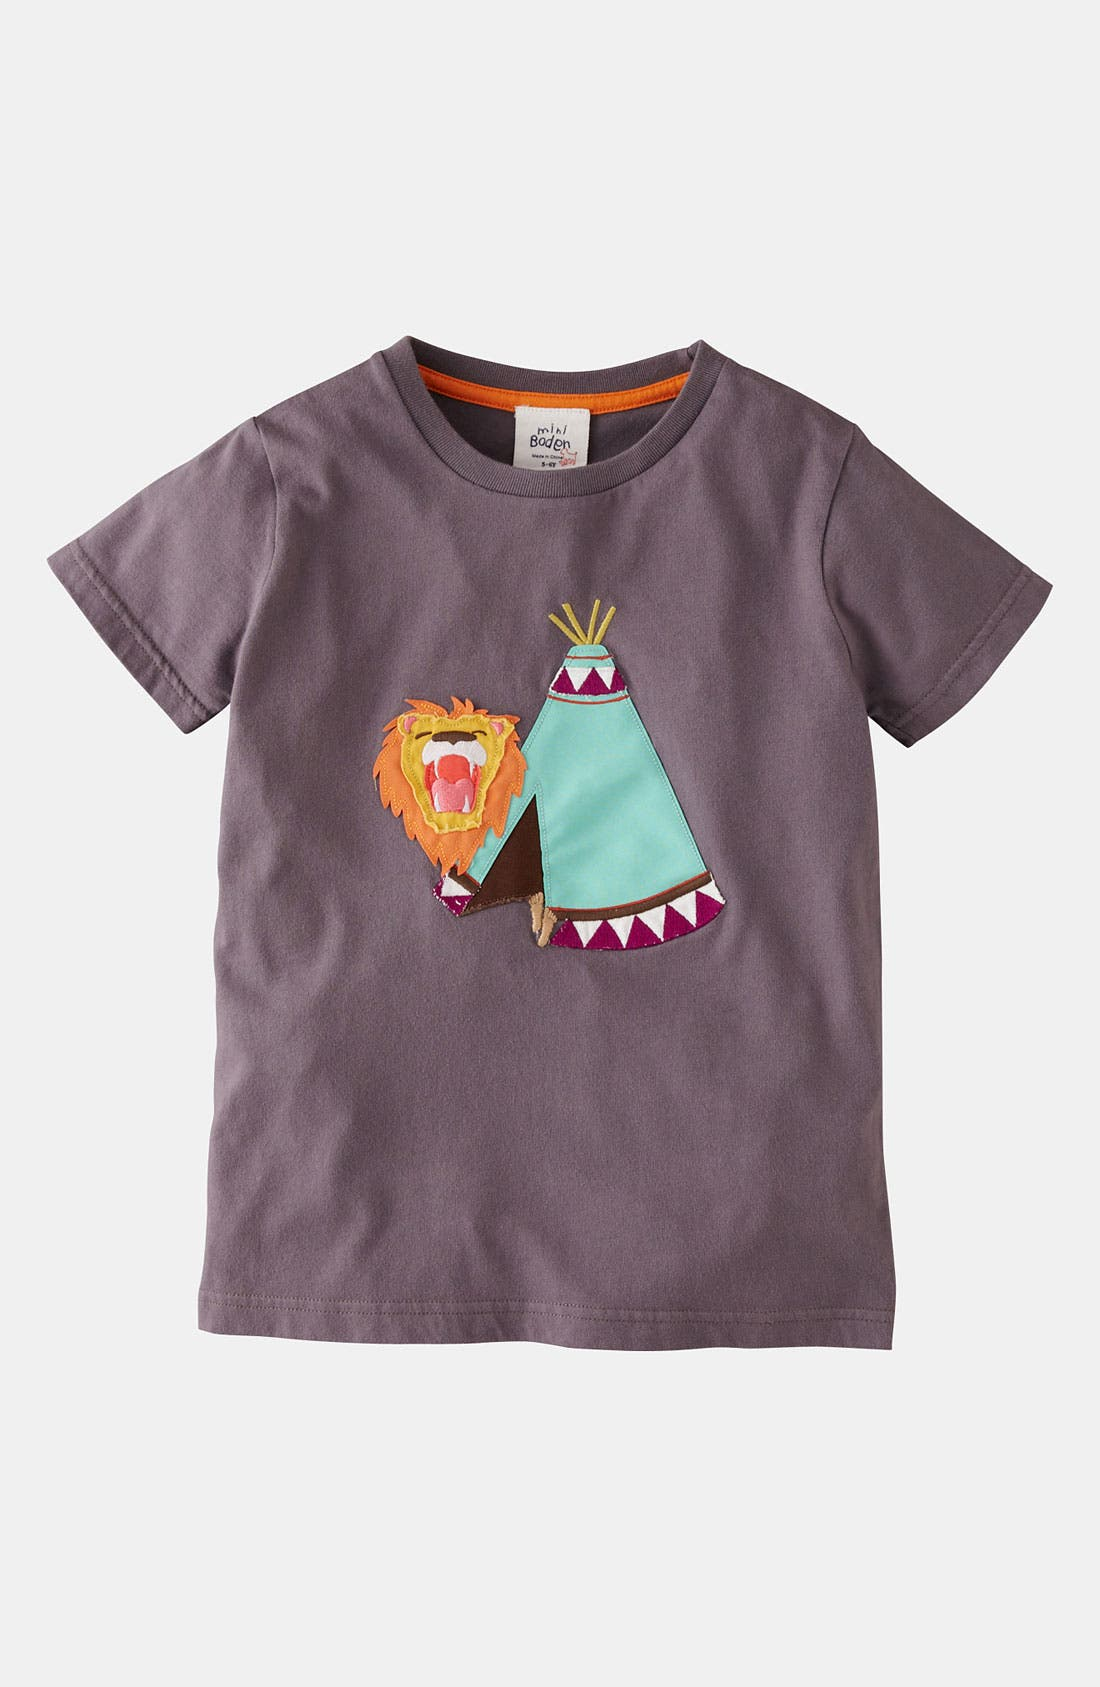 Main Image - Mini Boden 'Adventure Appliqué' T-Shirt (Toddler, Little Boys & Big Boys)